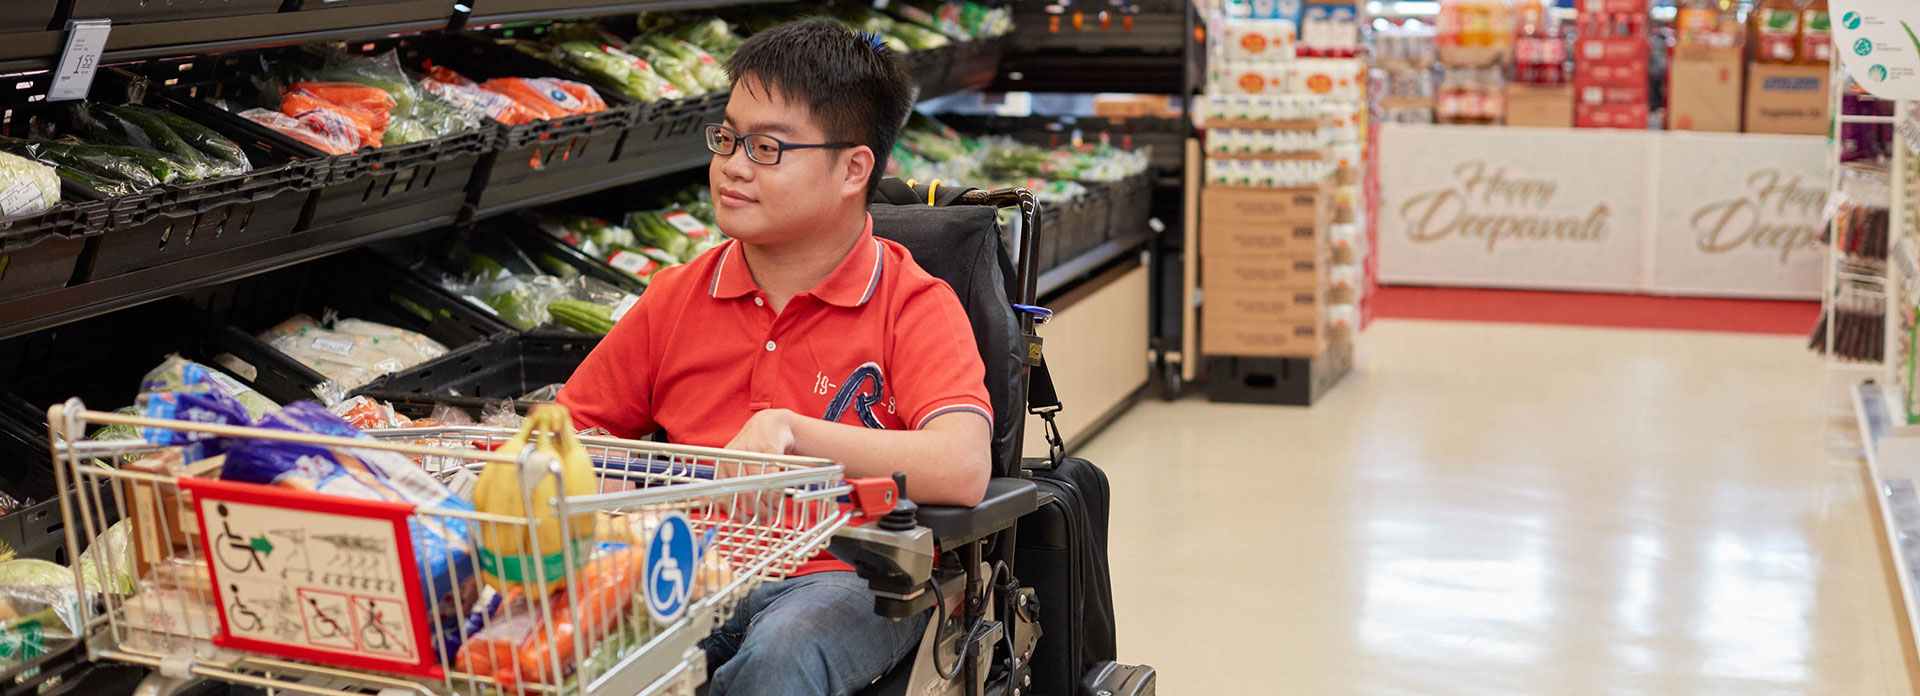 Young man in motorized wheelchair shopping for groceries in the supermarket